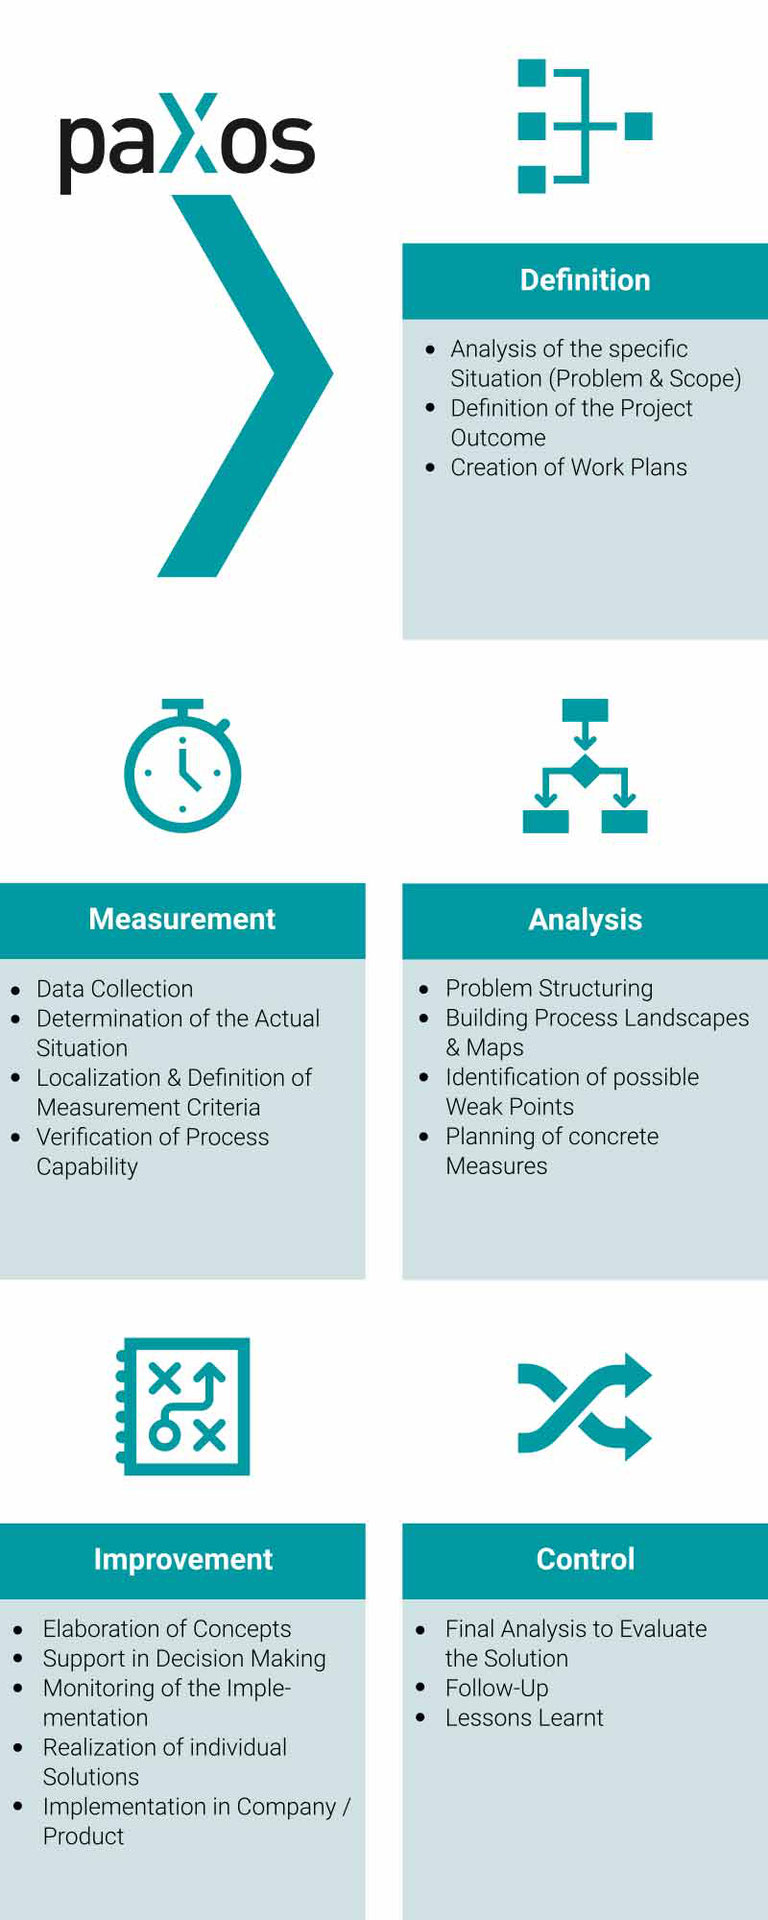 paXos Consulting Sectors Definition, Measurements, Analysis, Improvement and Control